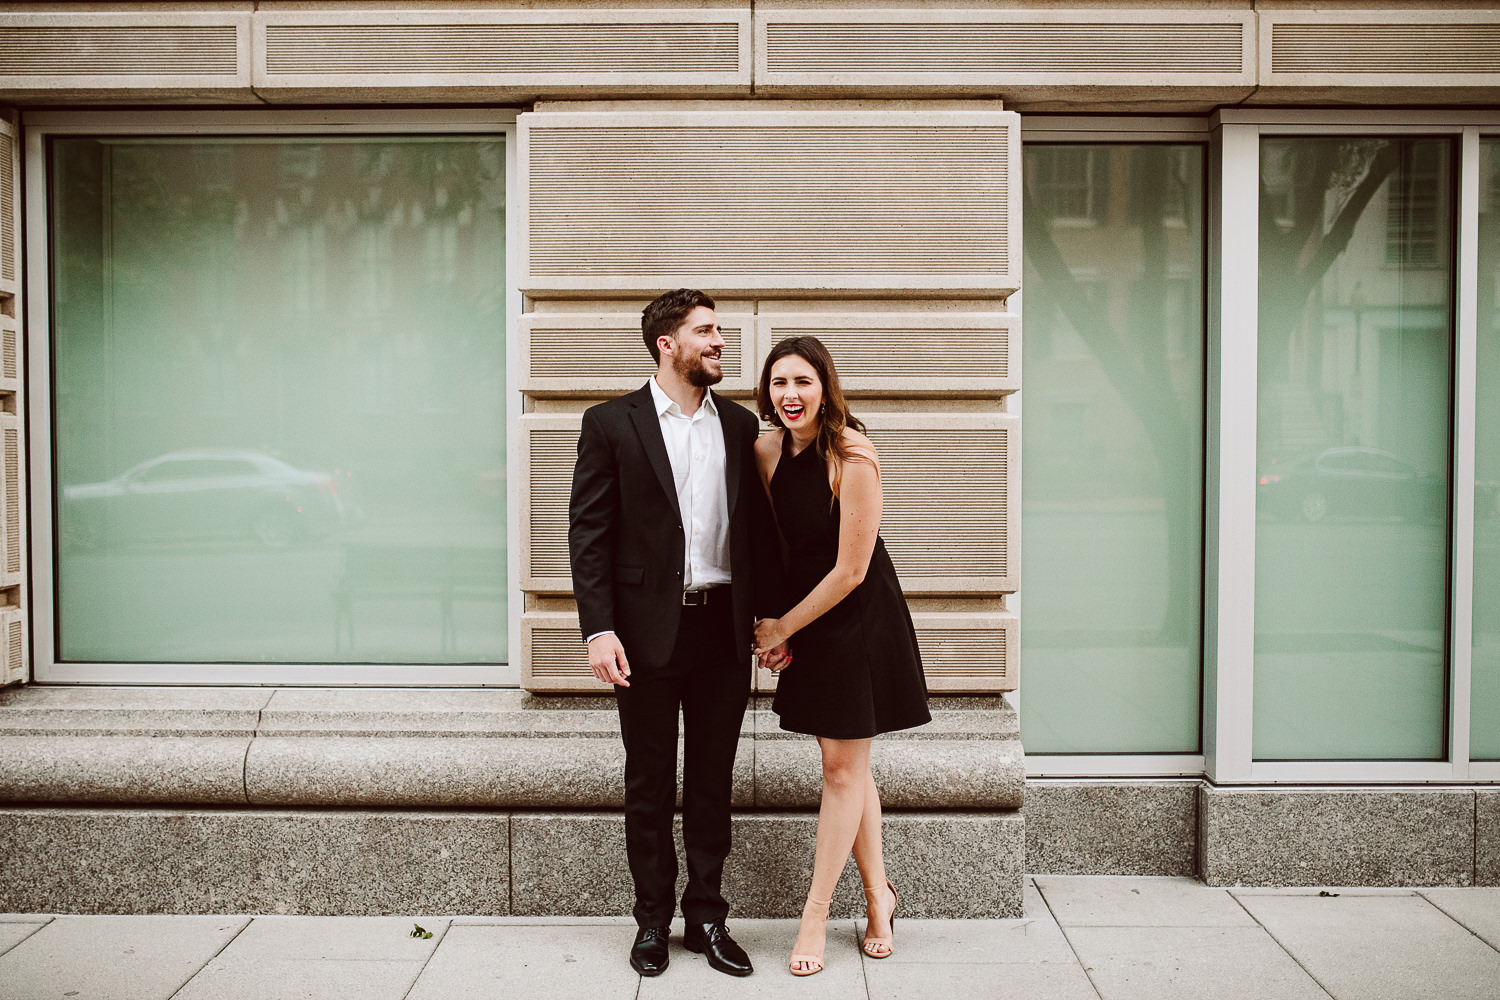 classy engagement photos in washington dc